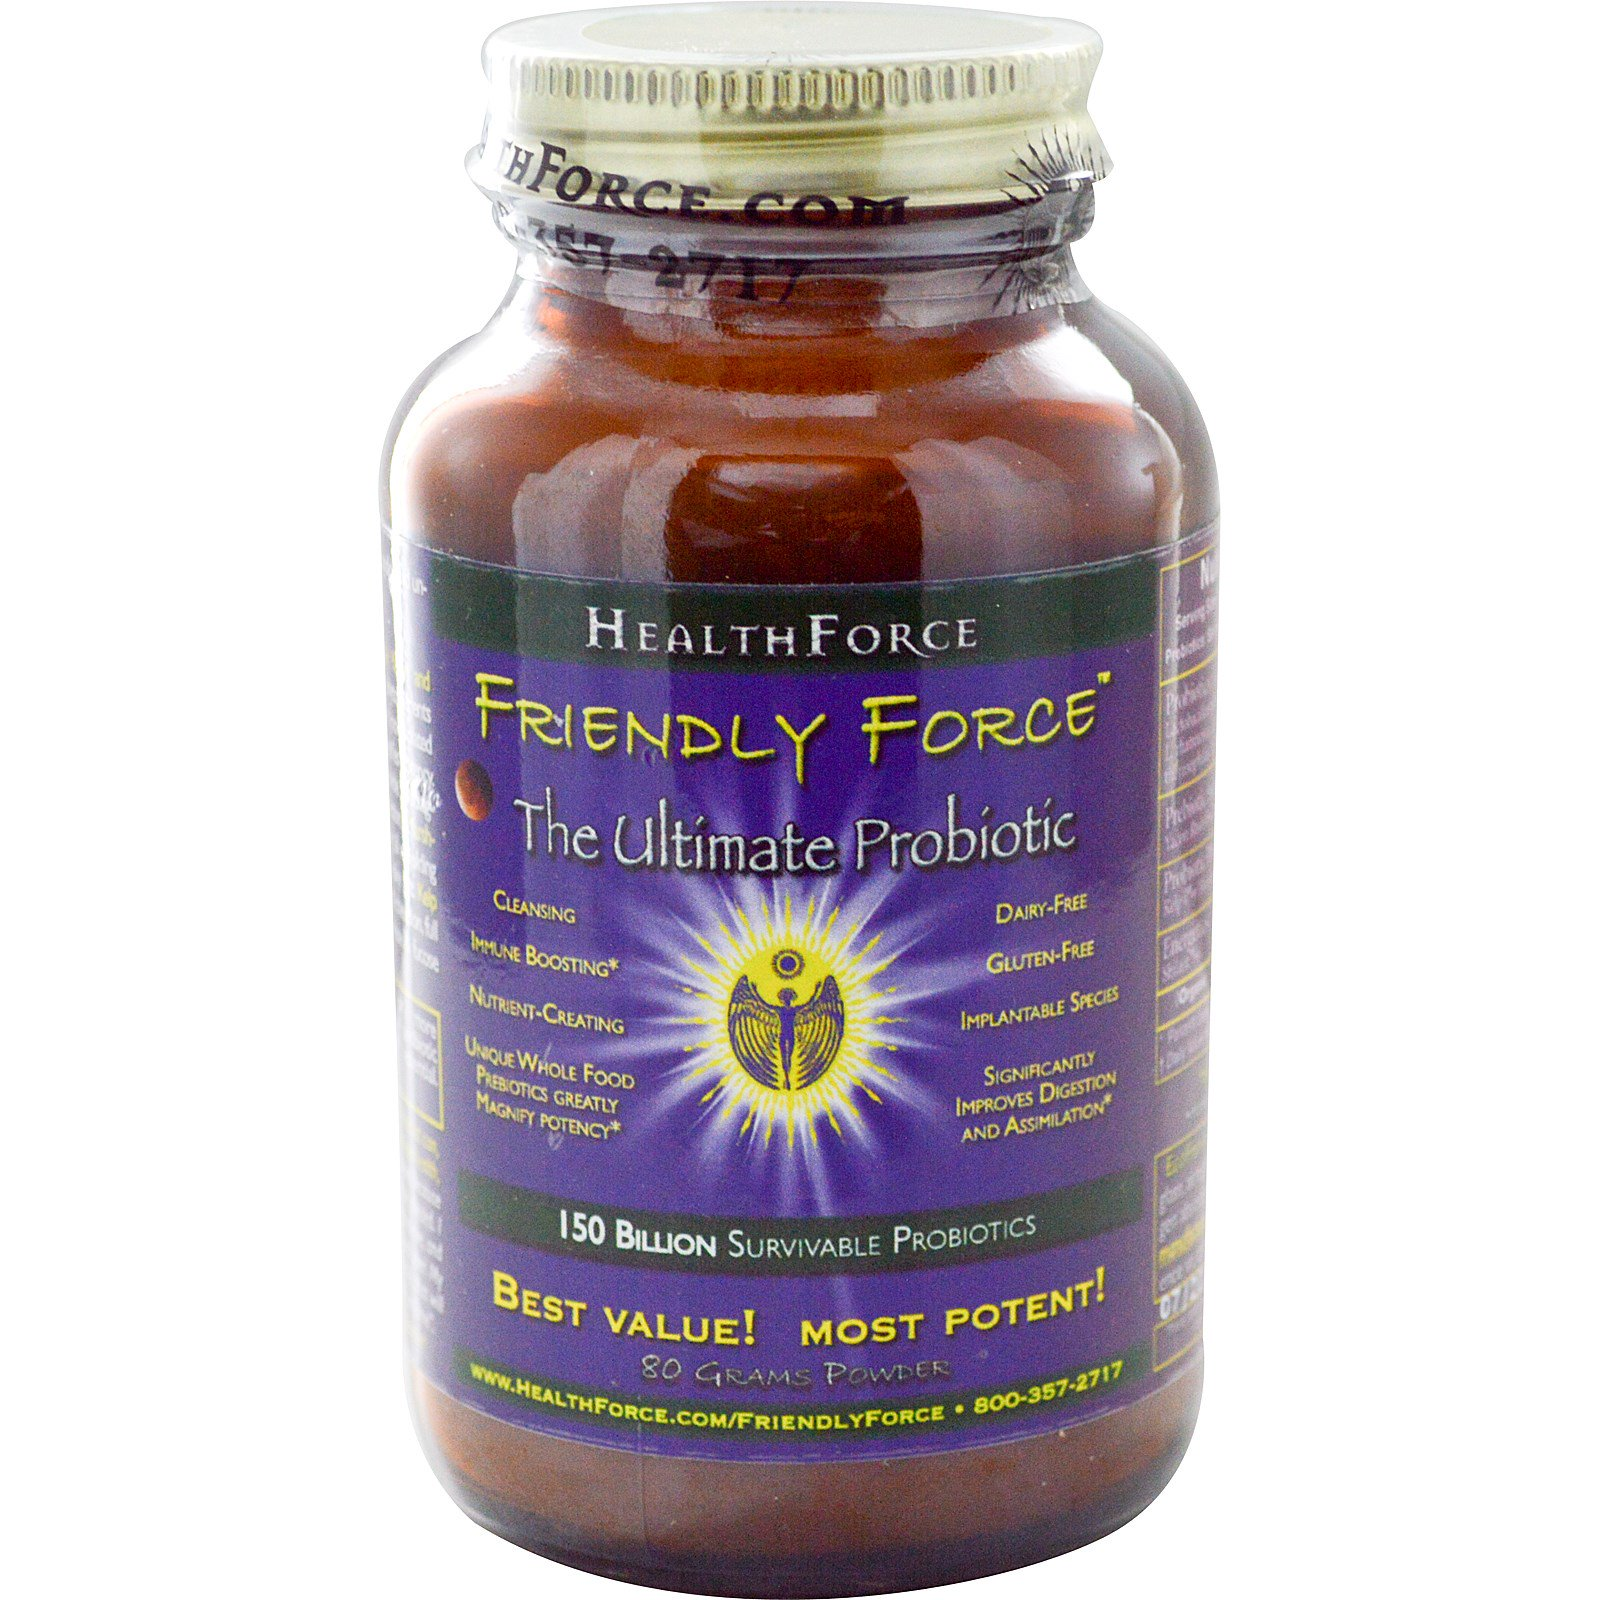 Healthforce probiotics